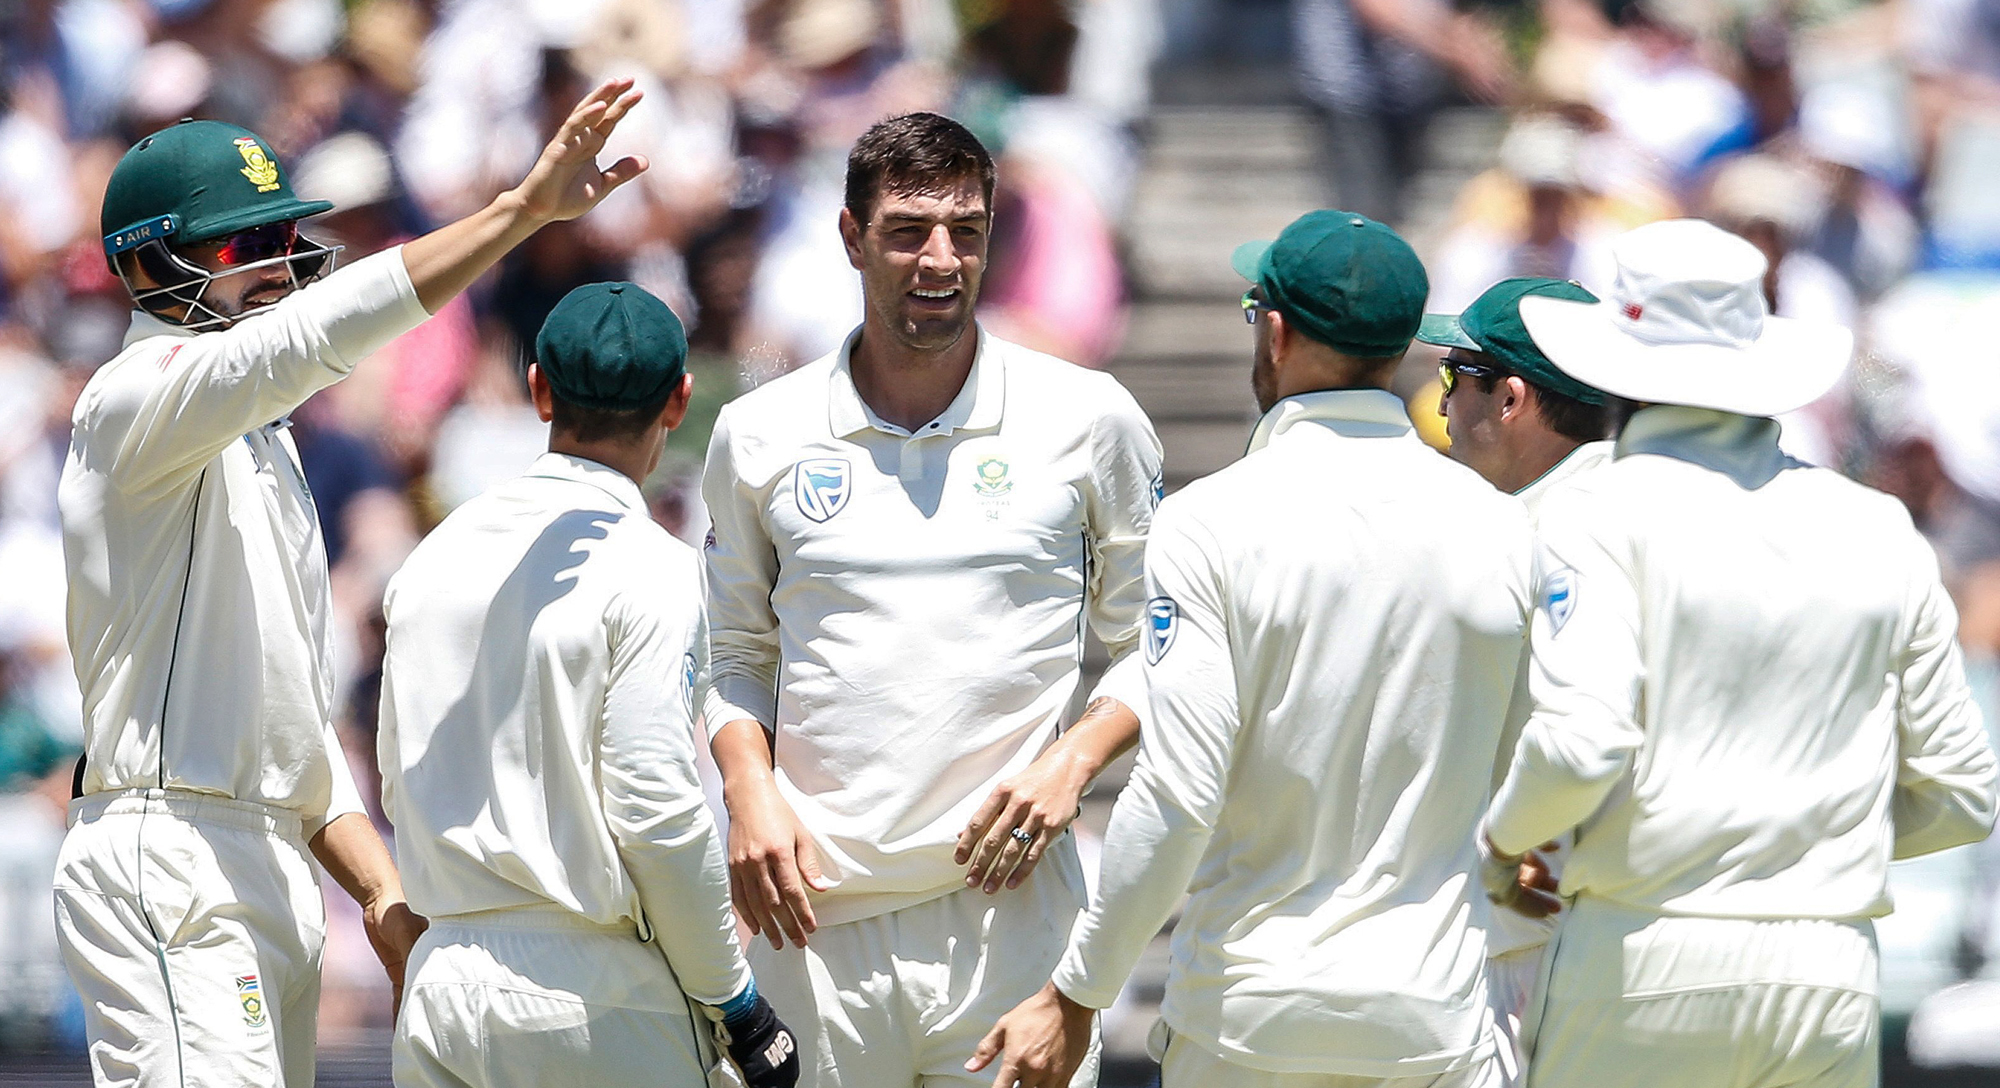 Pakistan vs South Africa - Second Test in Cape Town